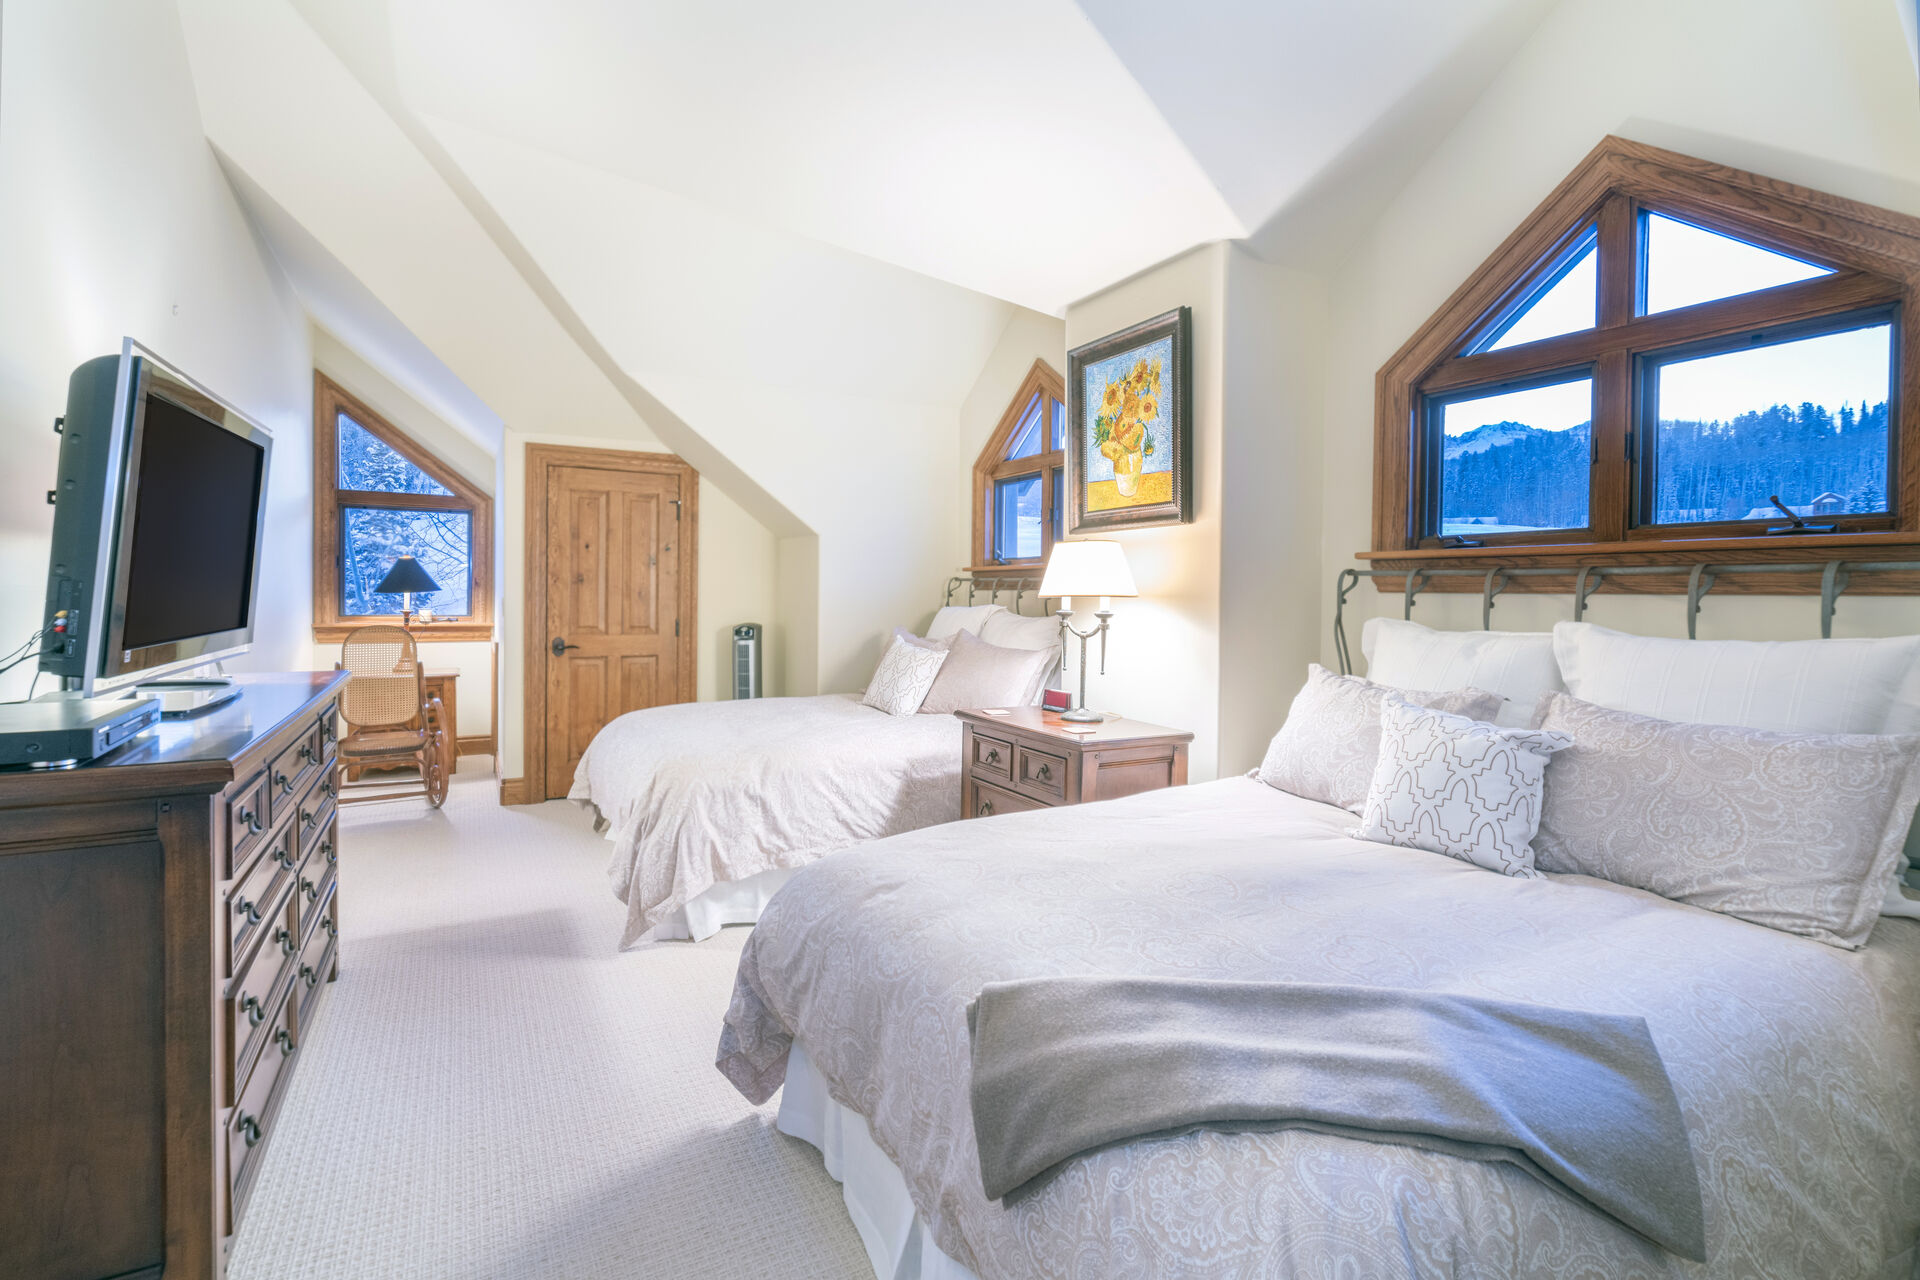 Another one of the bedrooms, complete with two large beds, a nightstand in between, and a wall-mounted TV above a dresser.